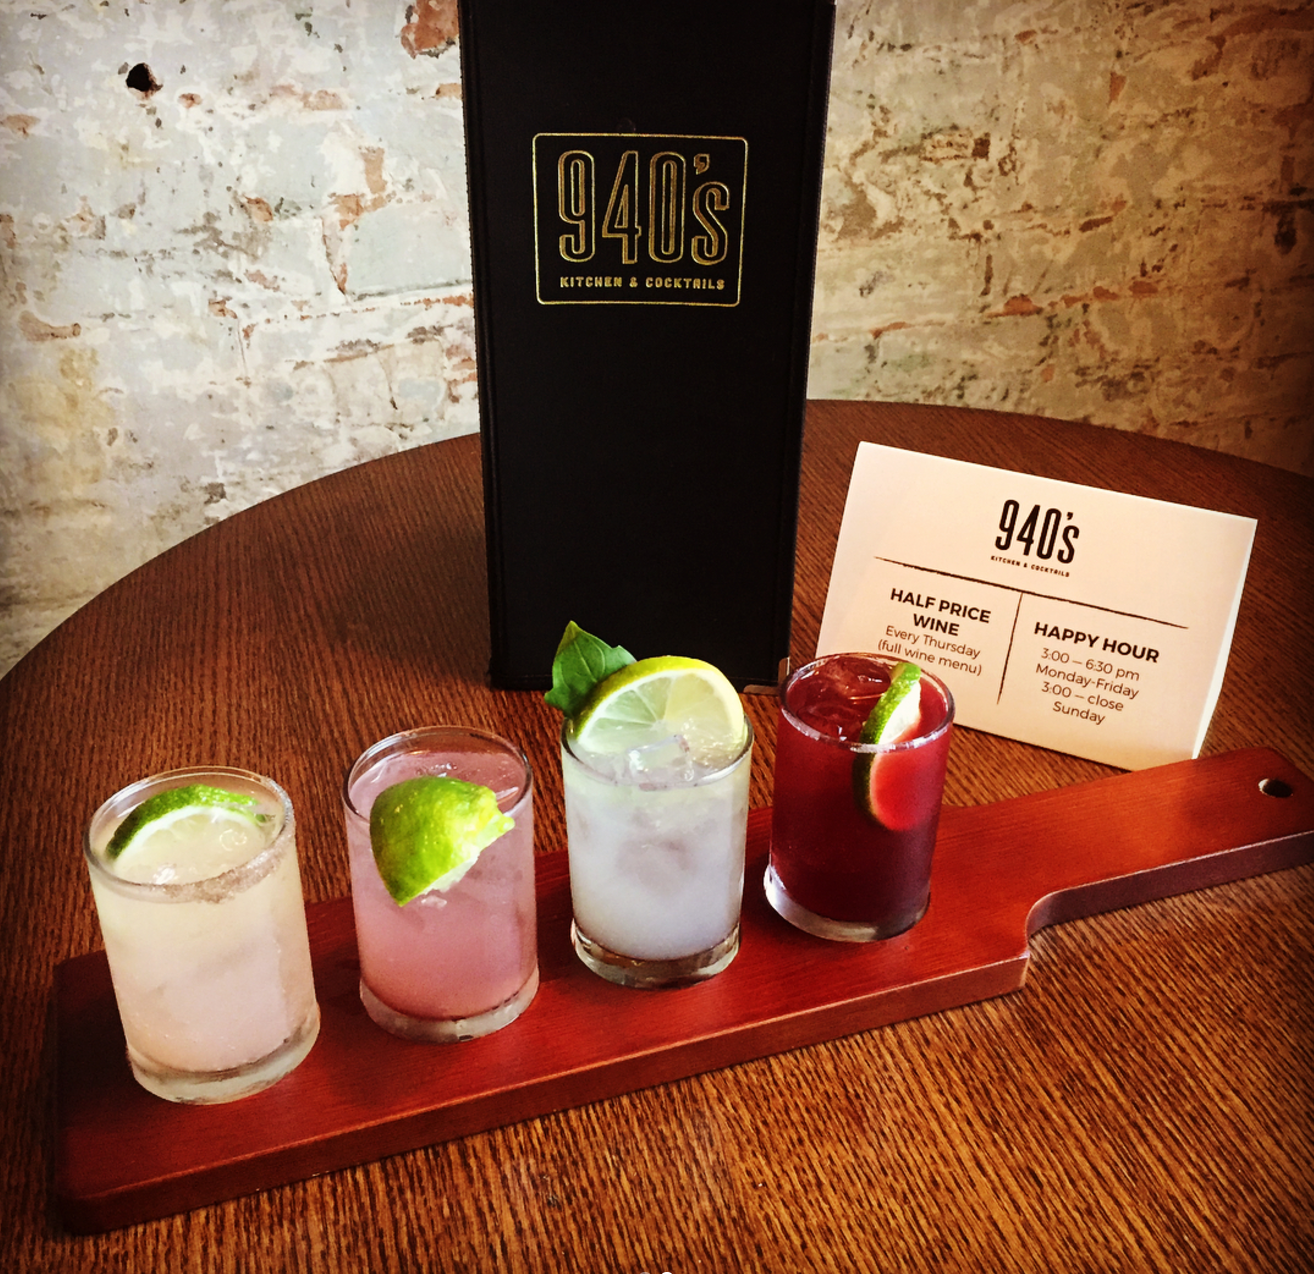 We can't wait to head over to @940skc and try their new flight of cocktails on tap.